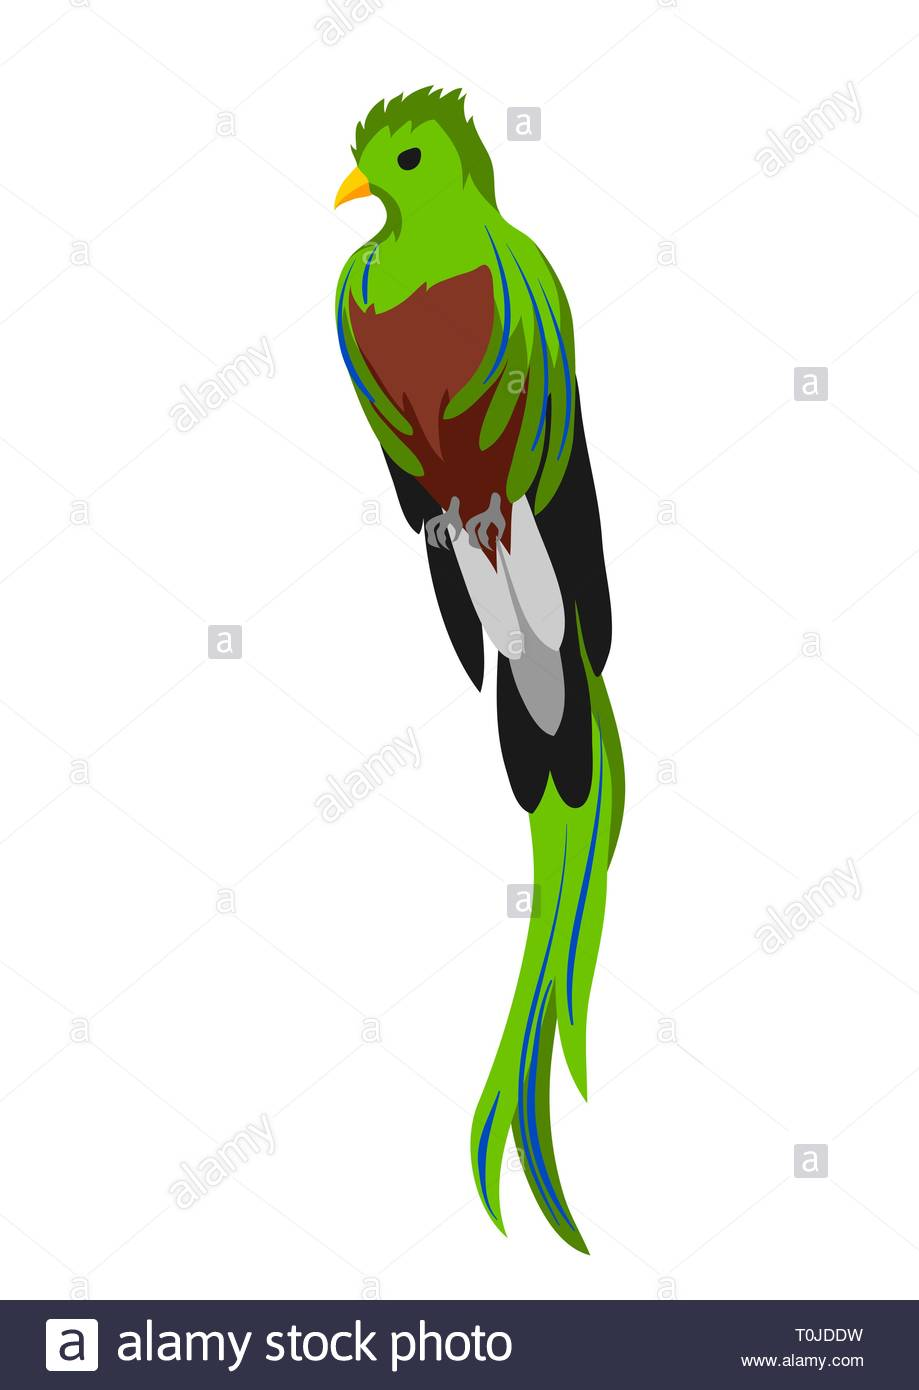 Illustration of quetzal Tropical exotic bird on white background 919x1390